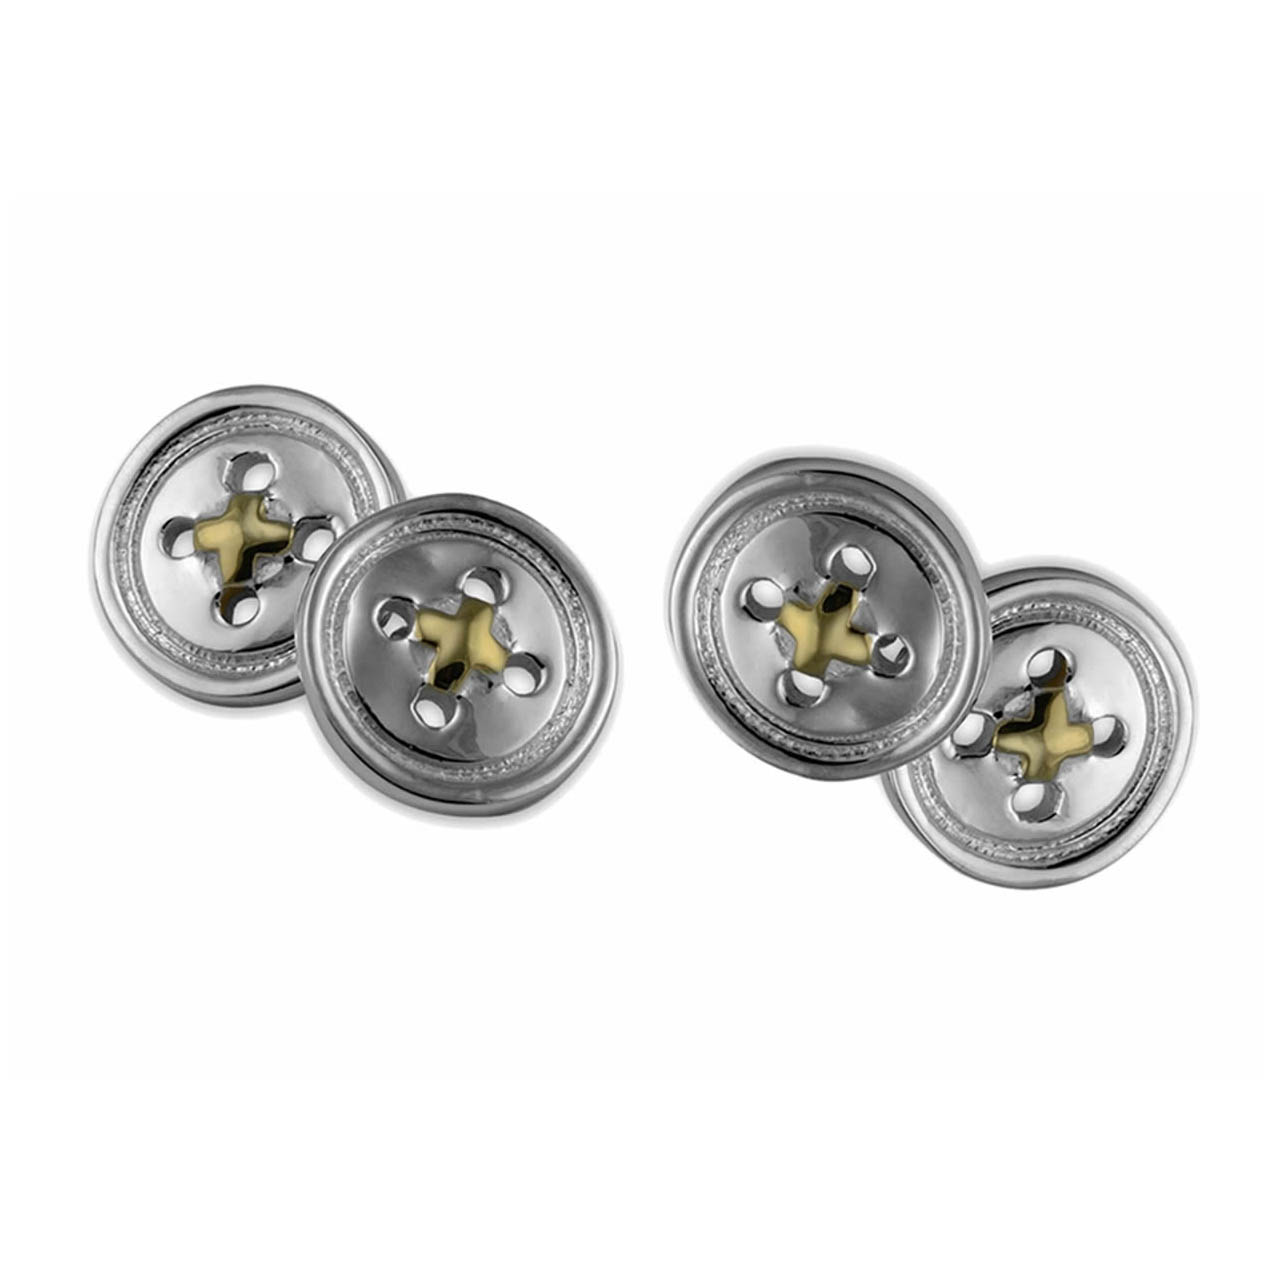 Sterling Silver Button Cufflinks With Gold Thread